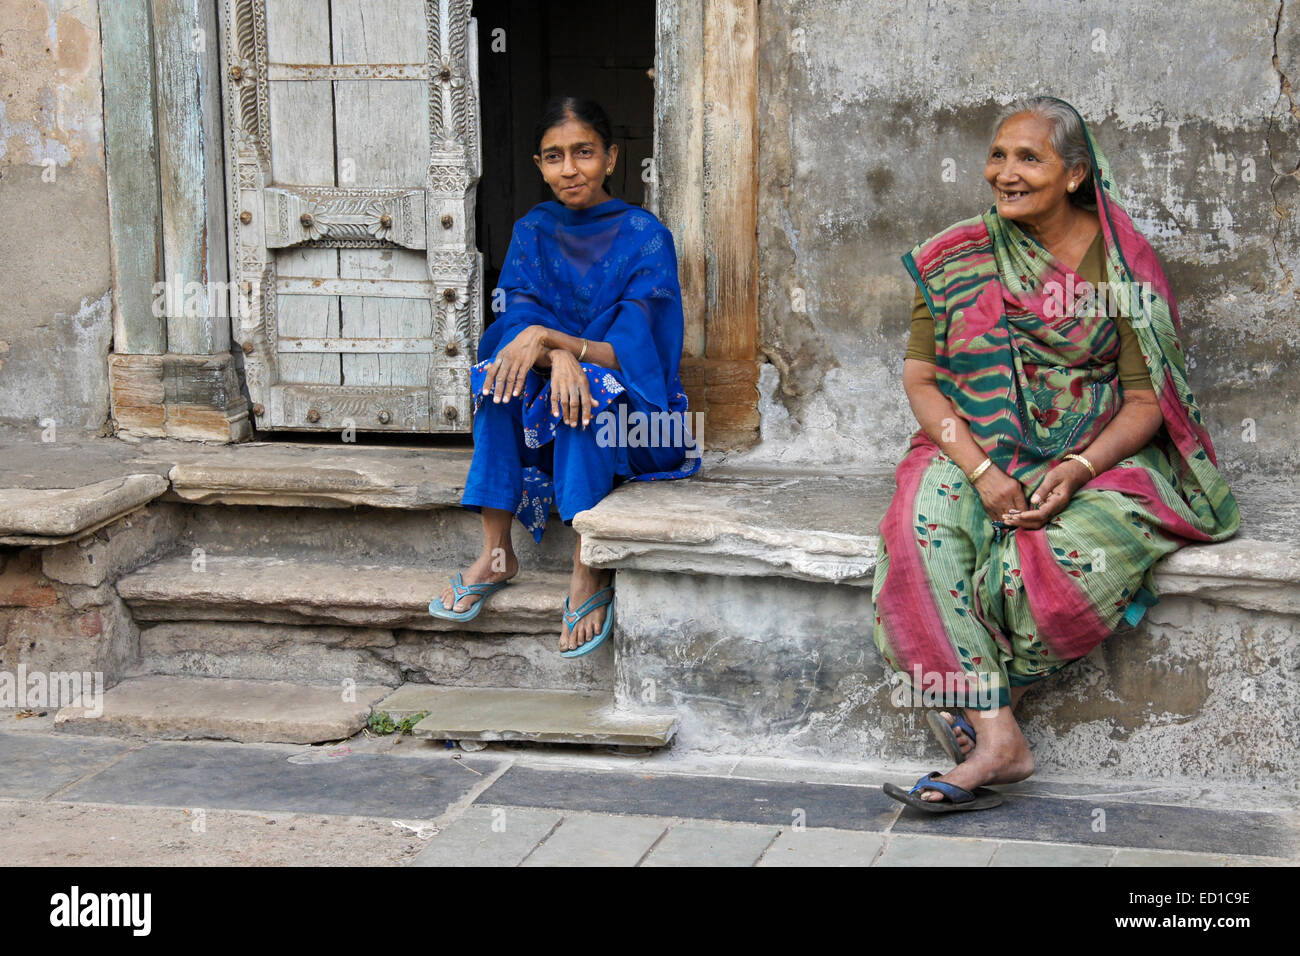 Women sitting outside home in Old Ahmedabad, Gujarat, India - Stock Image